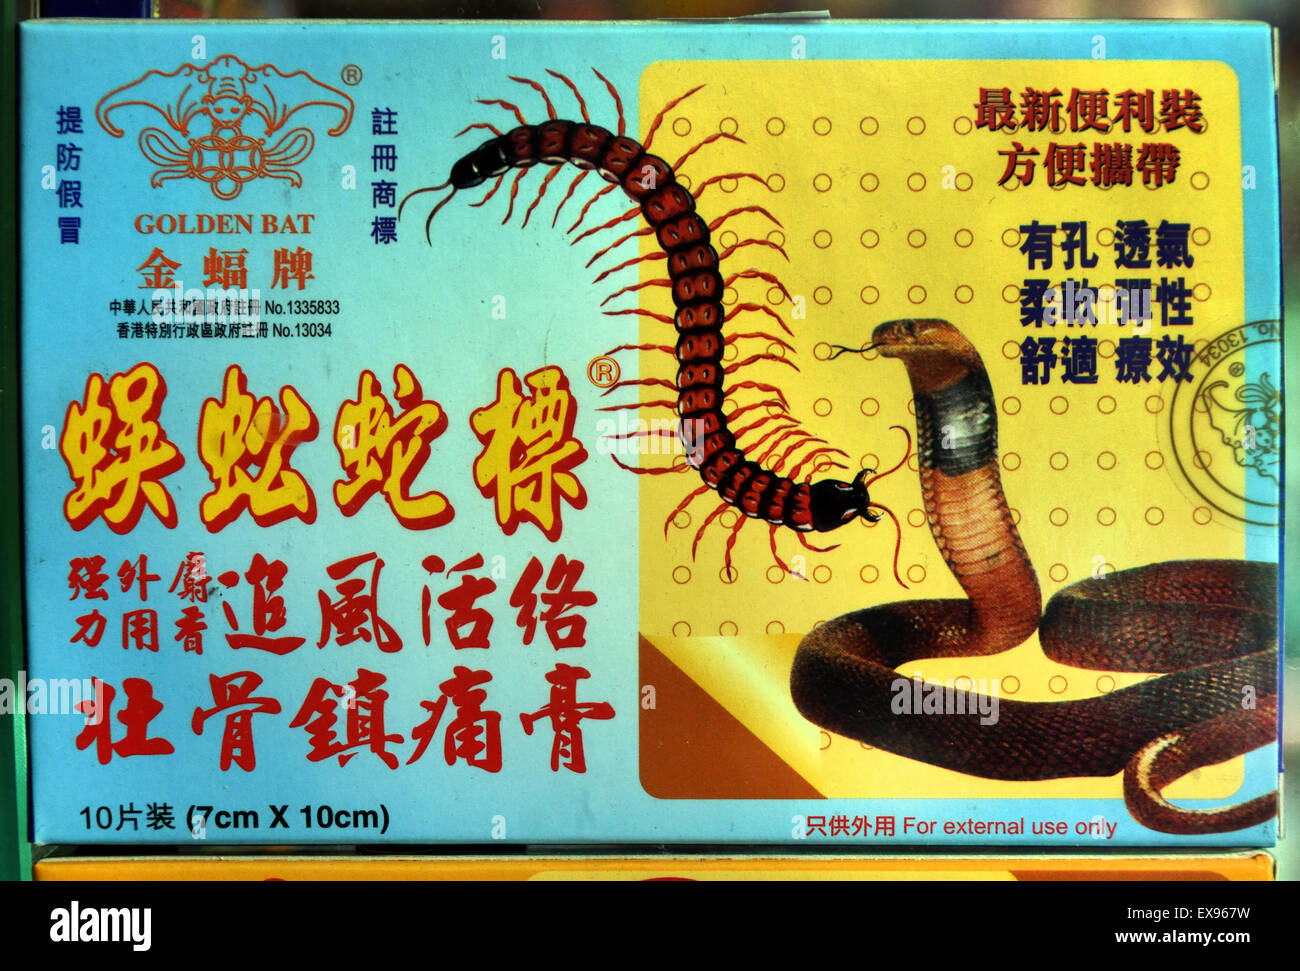 Showcase Chinese pharmacy casing alternative medicine Chinese China Snake Millipede - Stock Image